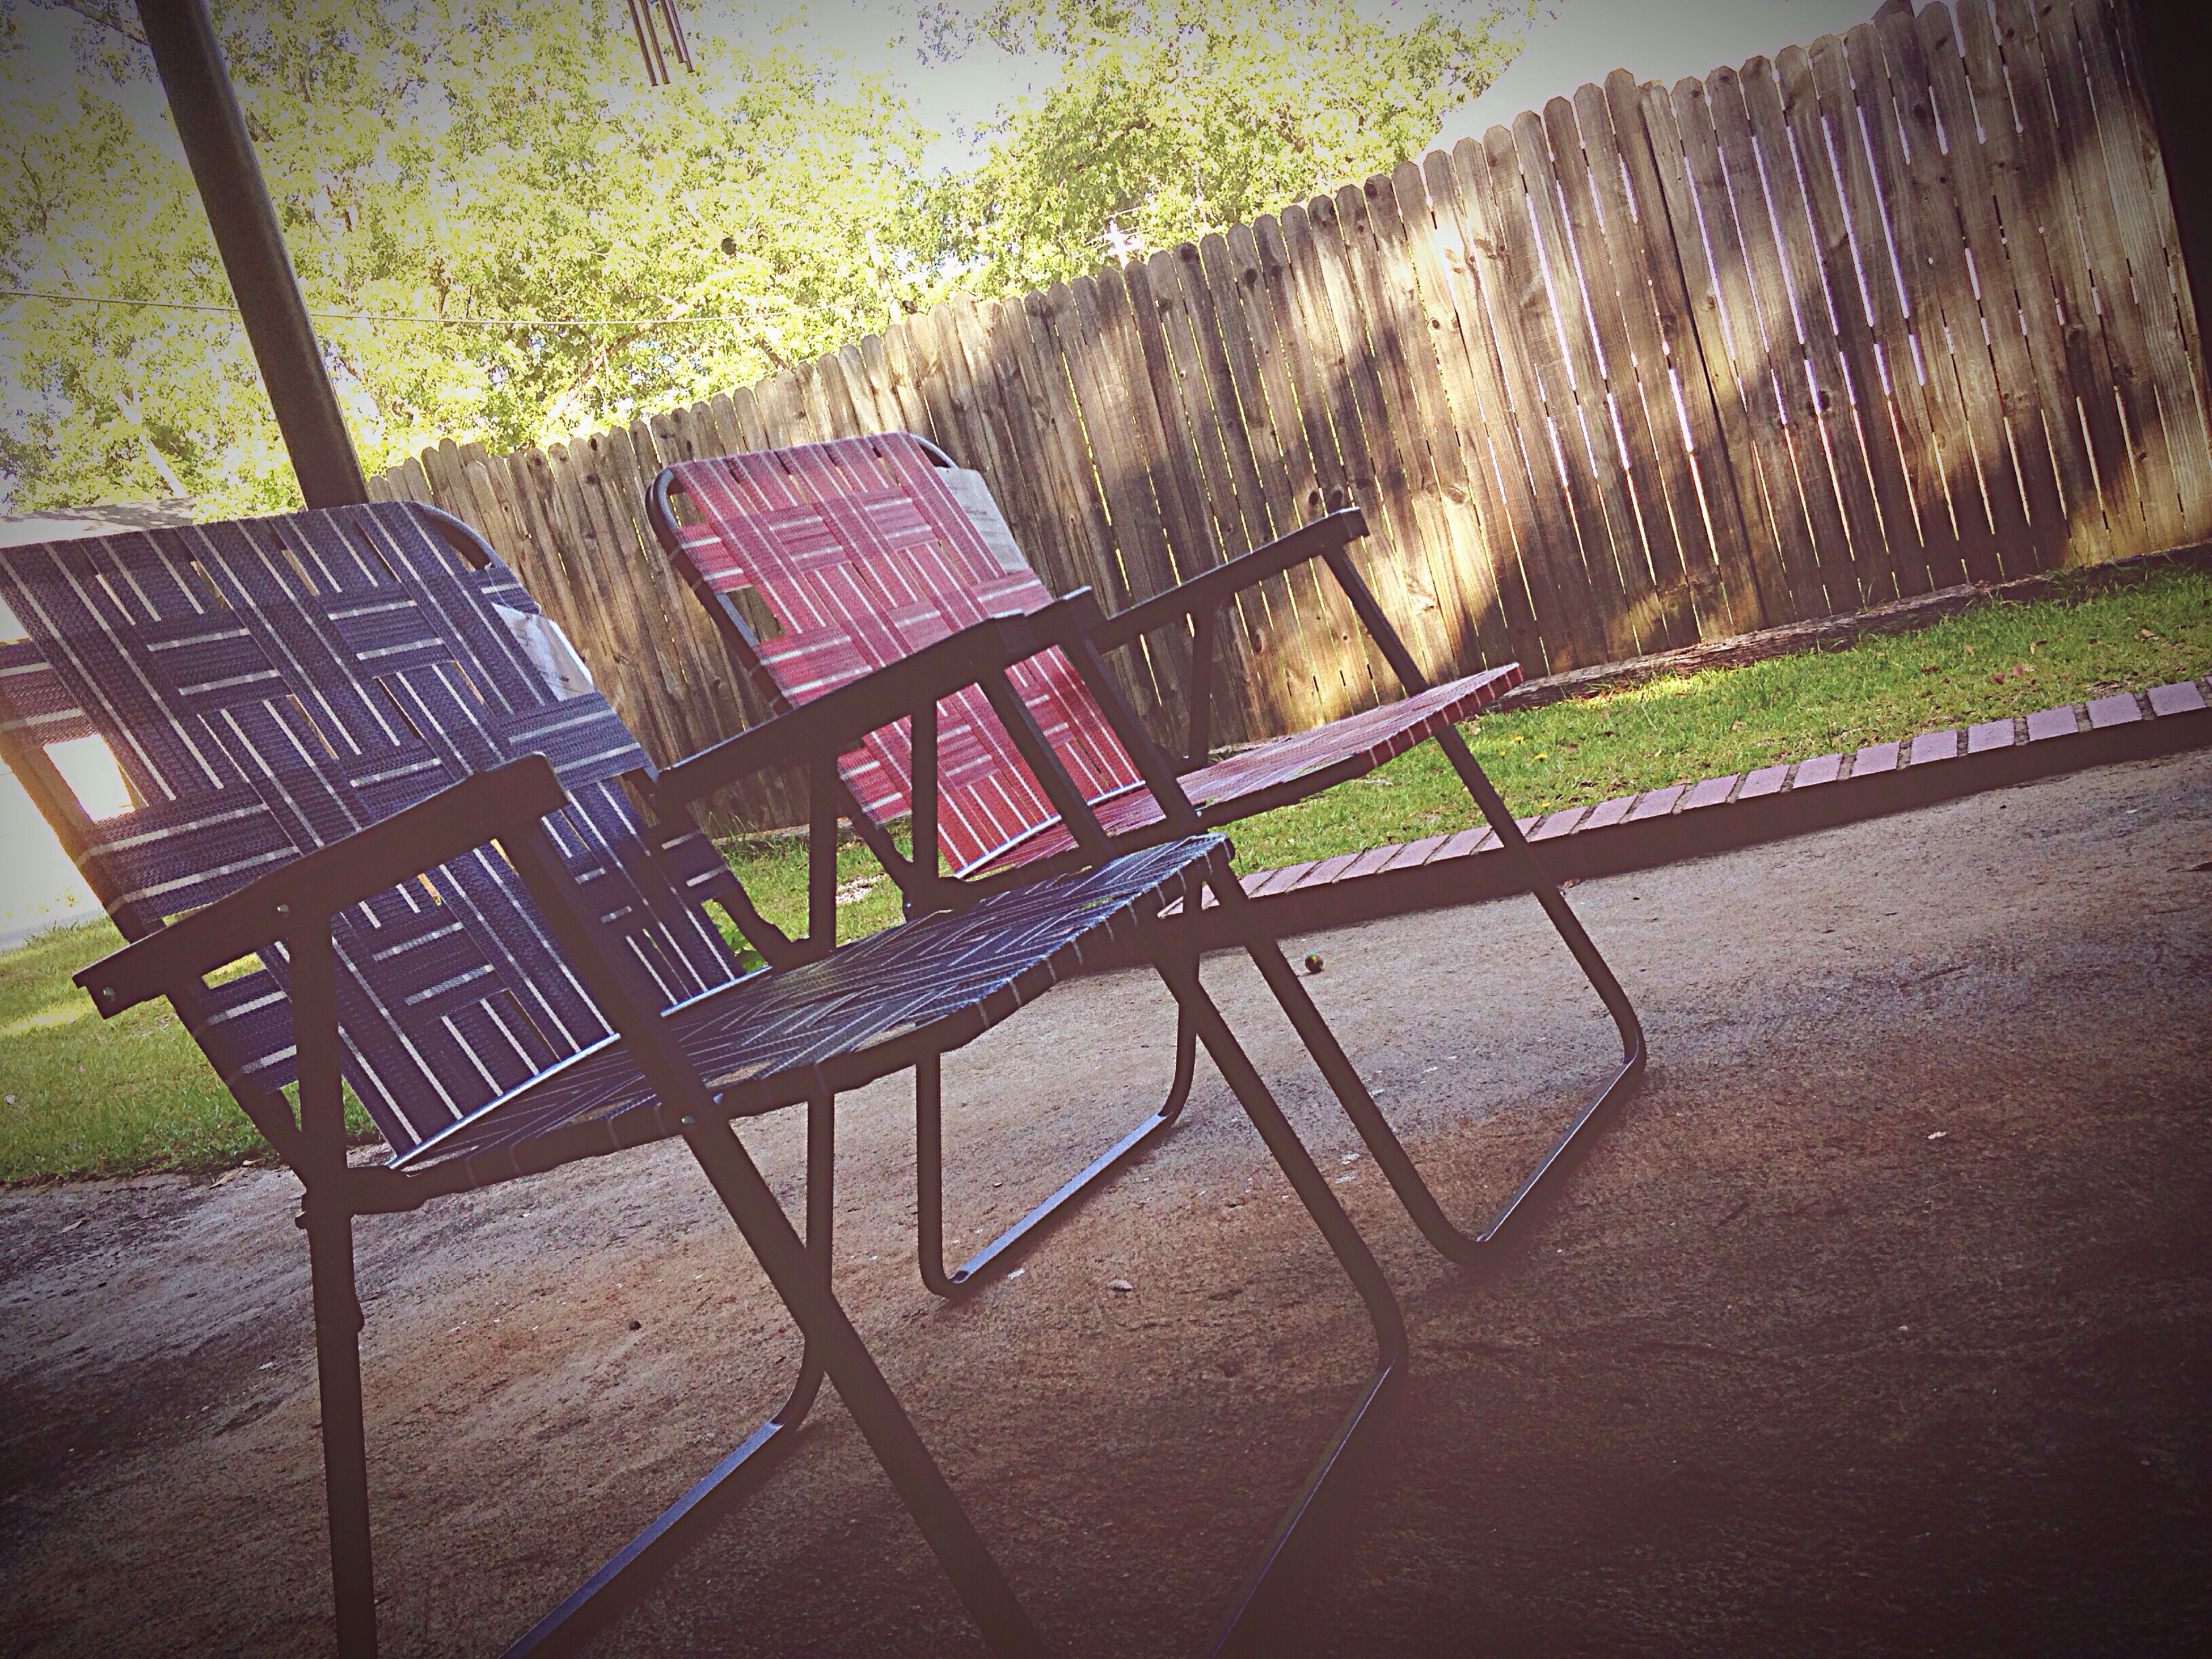 shadow, sunlight, empty, grass, chair, absence, bench, fence, metal, protection, seat, park - man made space, day, high angle view, outdoors, no people, sidewalk, green color, safety, built structure